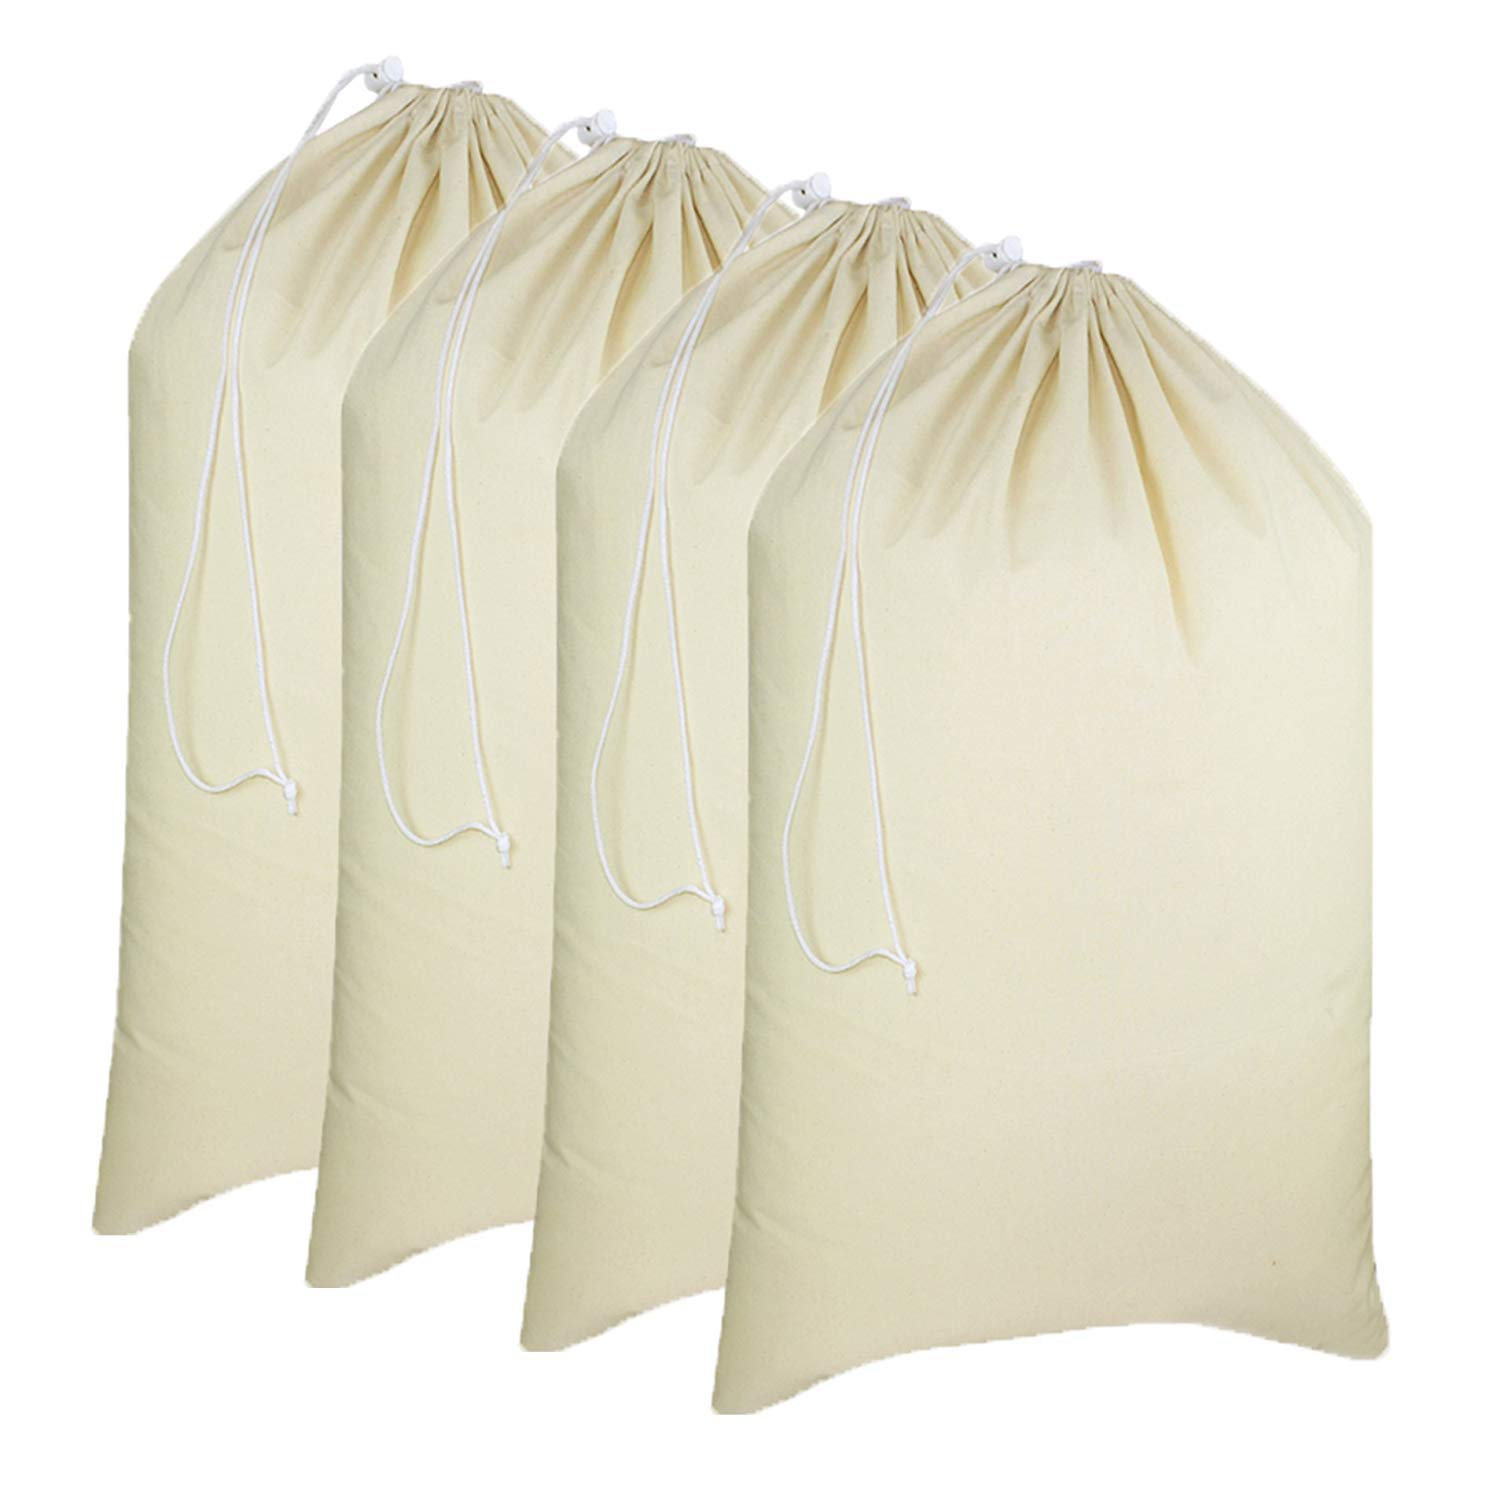 Simpli-Magic 79164 Canvas Laundry Bags, 28'' x 36'', Natural, 4 Pack